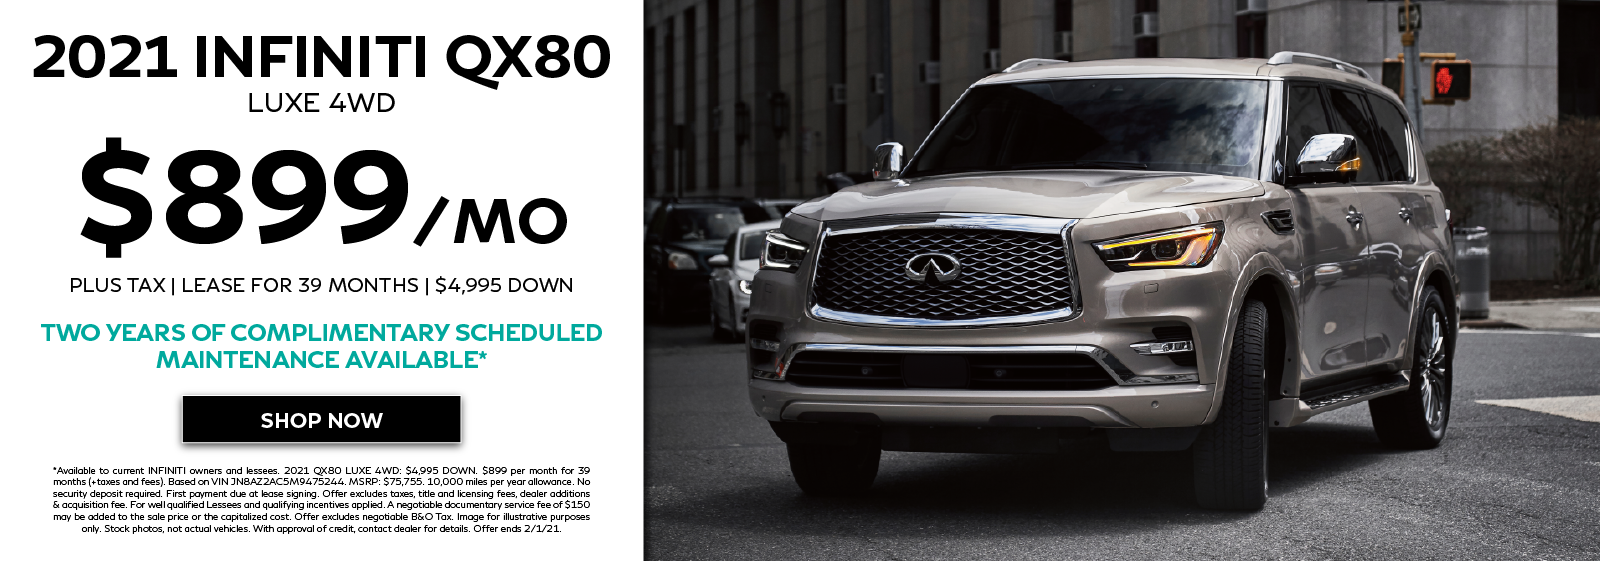 Well-qualified lessees can lease a new 2021 INFINITI QX80 LUXE 4WD for $899 per month for 39 months plus get two years complimentary scheduled maintenance. Click to view inventory.